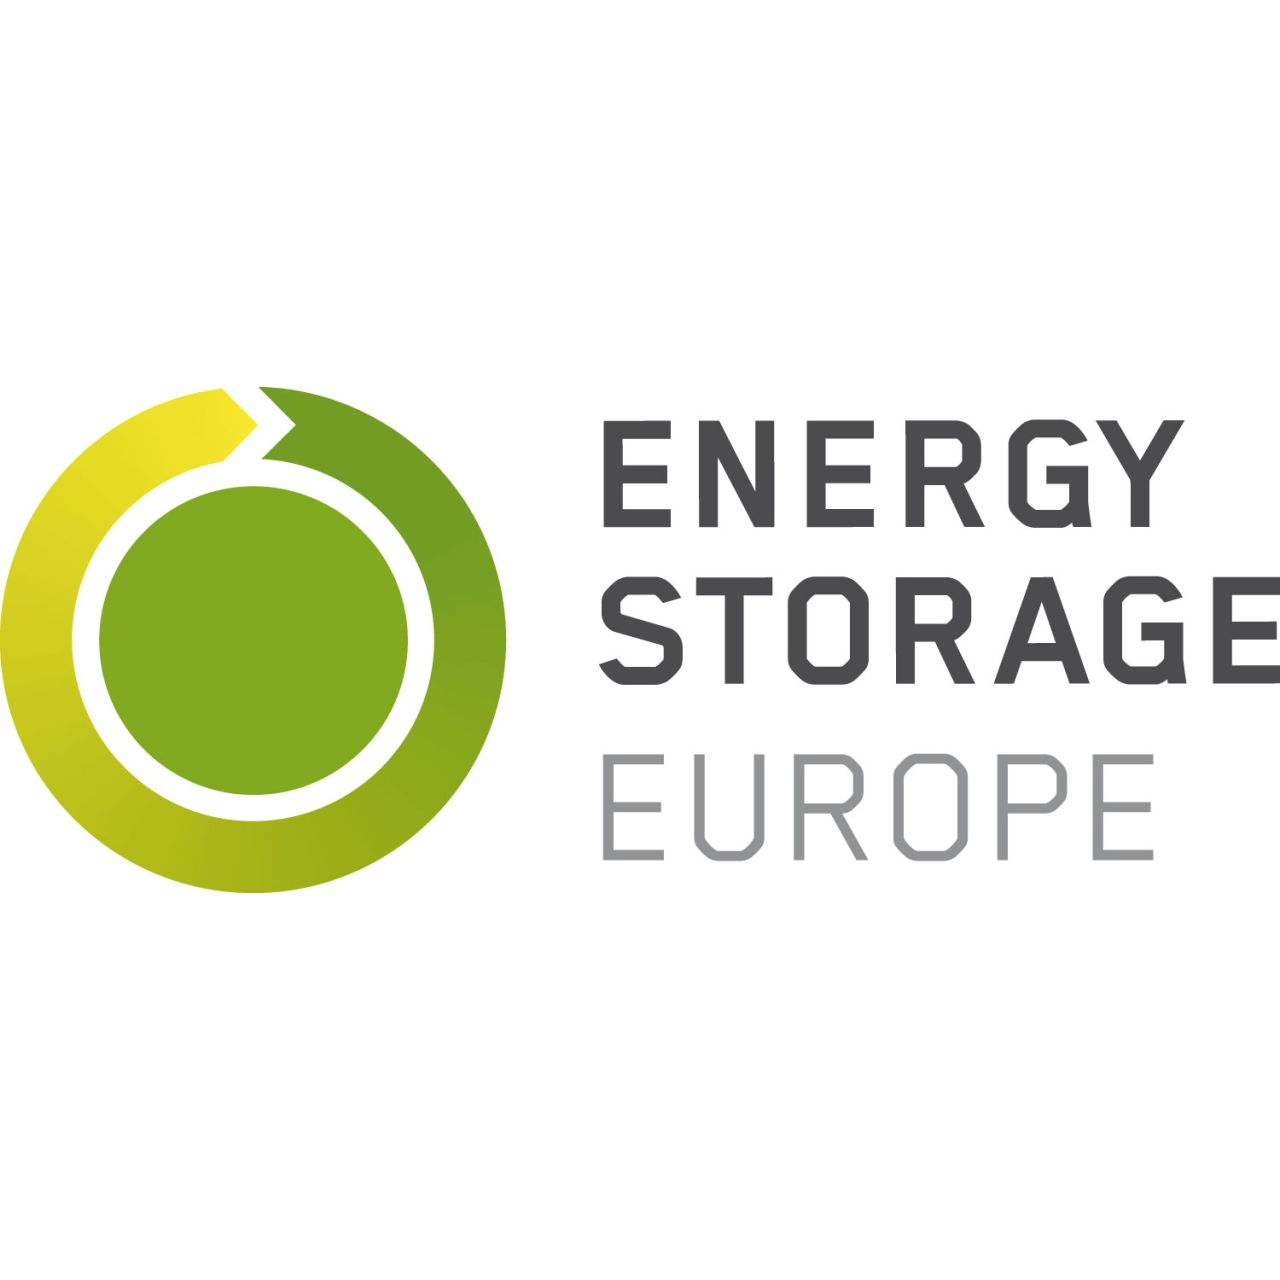 Energy Storage Europe: Düsseldorf, 16.03.-18.03.2021